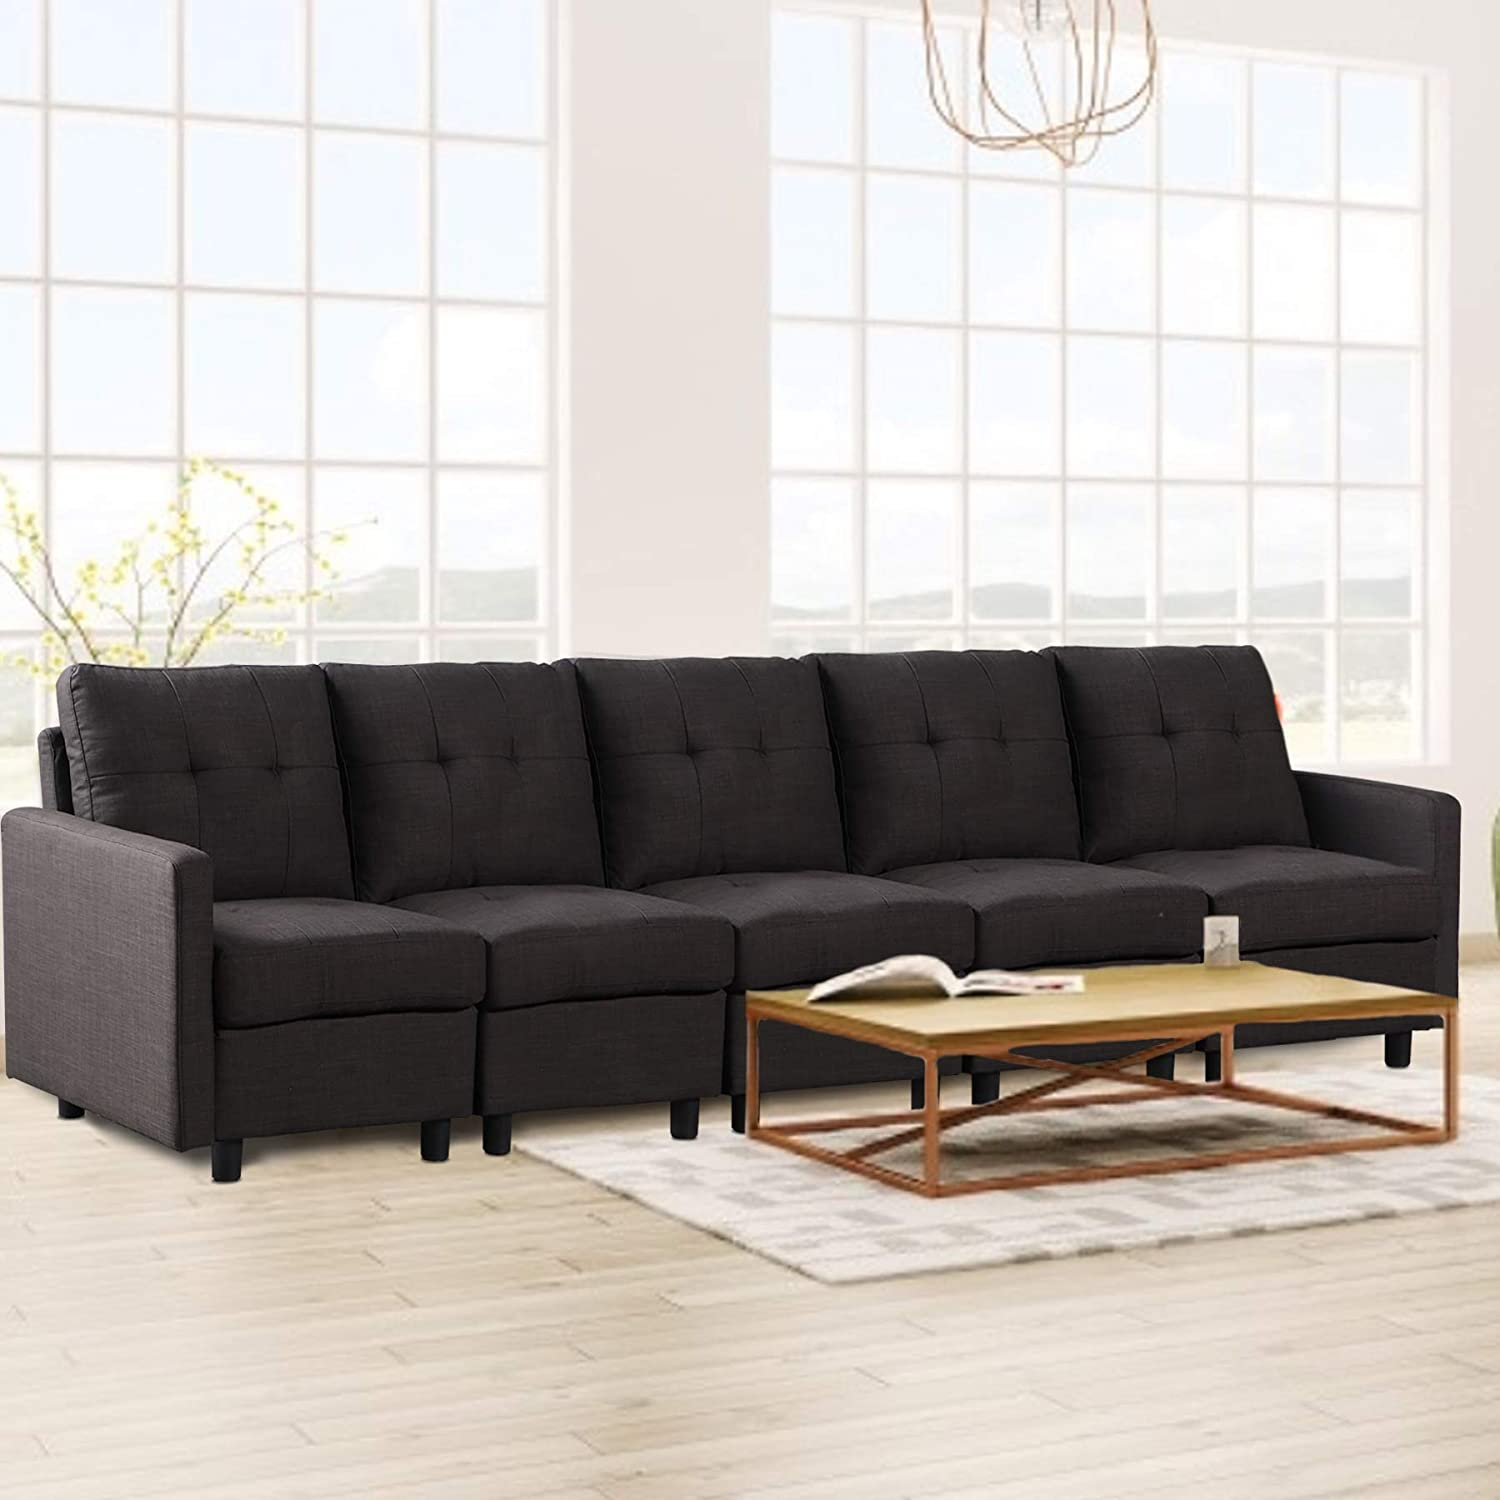 DAZONE Modular Fort Worth Mall Sectional Sofa 5-Piece Assemble OFFicial store